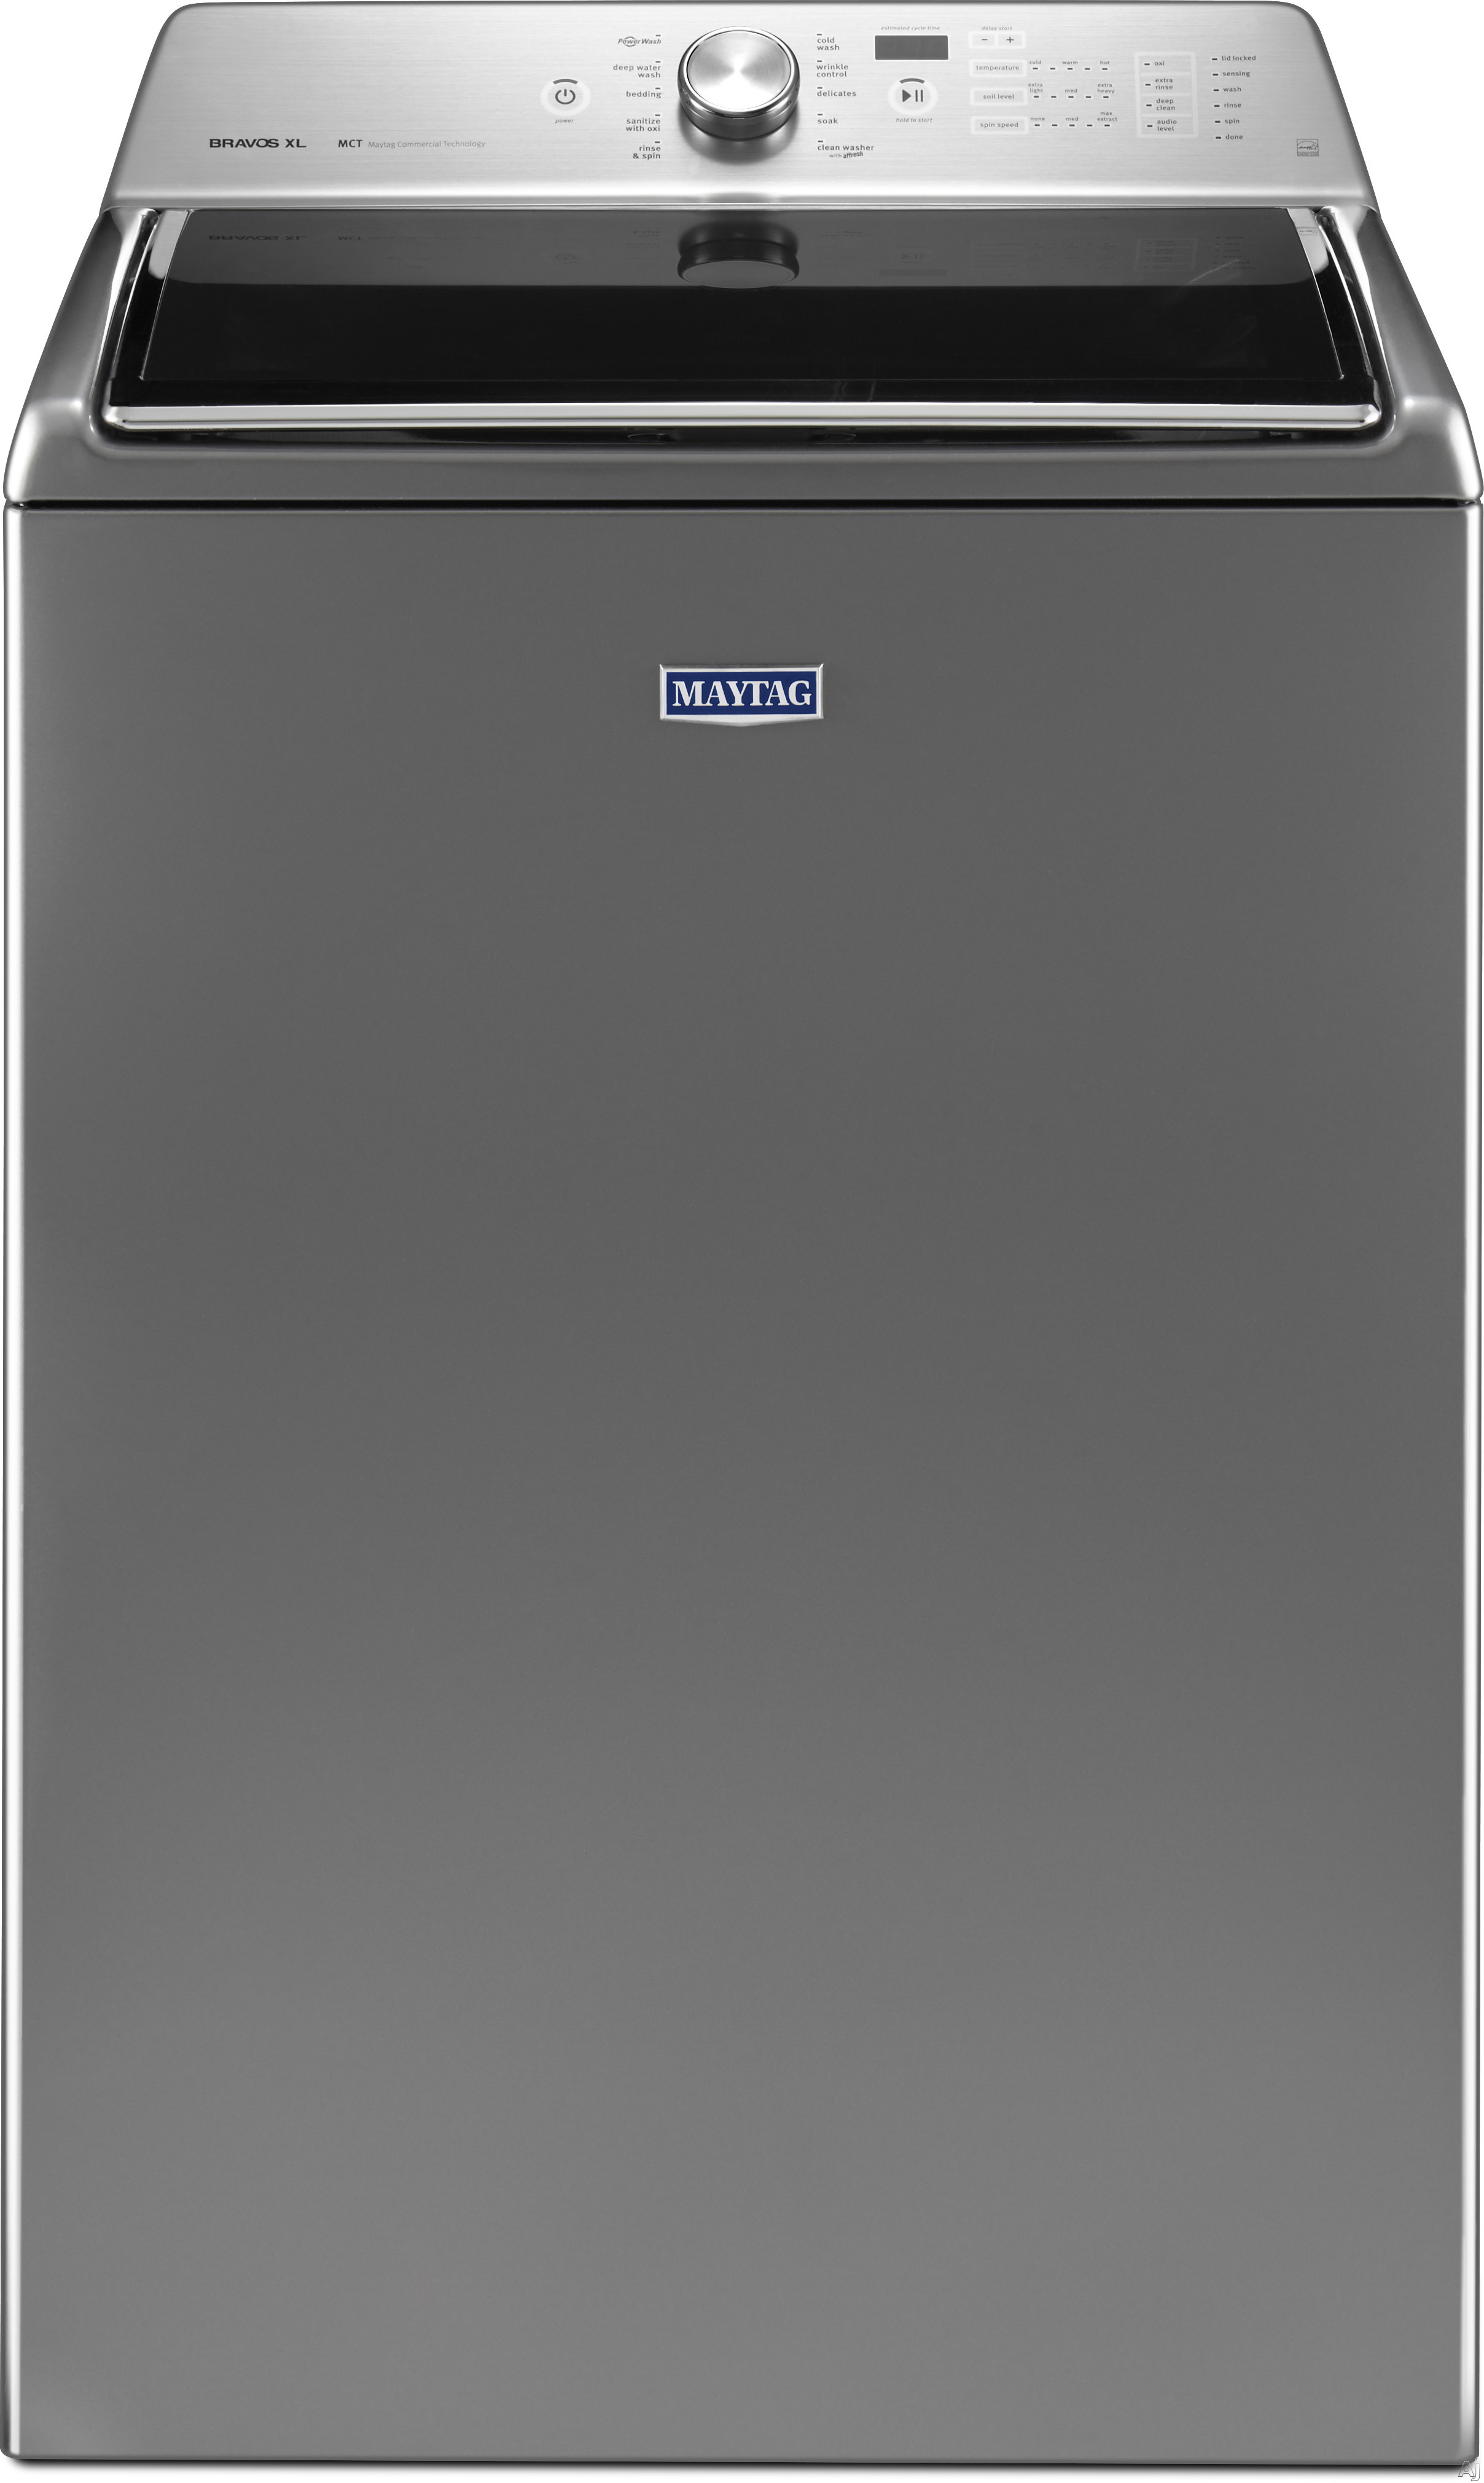 Maytag MVWB835D 28 Inch Top Load Washer with PowerWash Cycle, Deep Clean Option, Sanitize with Oxi, 11 Wash Cycles, 850 RPM, Optimal Dispensers, Power Impeller, Clean Washer Cycle with Affresh, ENERGY STAR and 5.3 cu. ft. Capacity